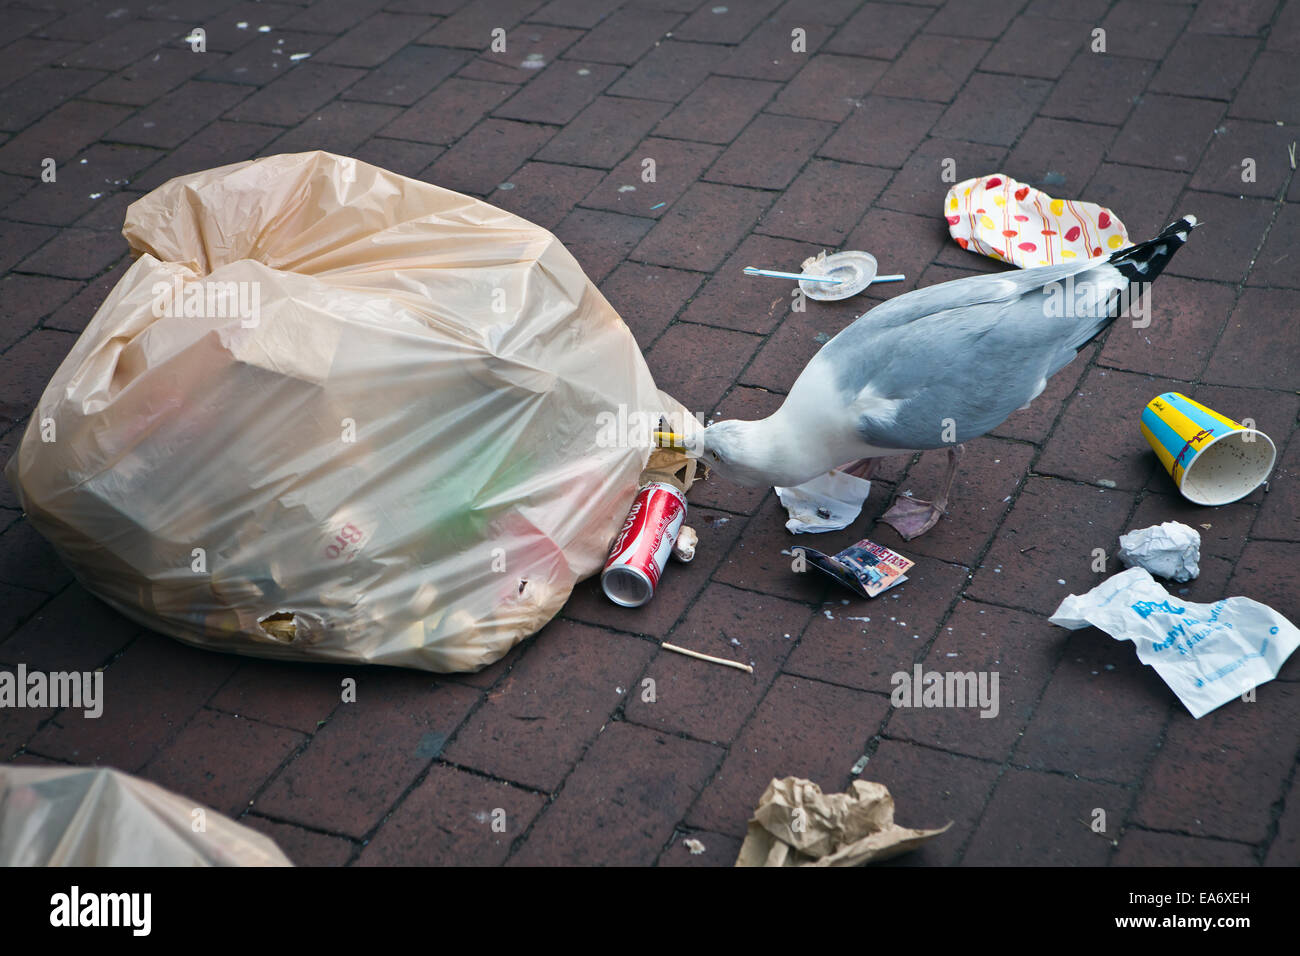 Seagull scavenging from rubbish bag - Stock Image